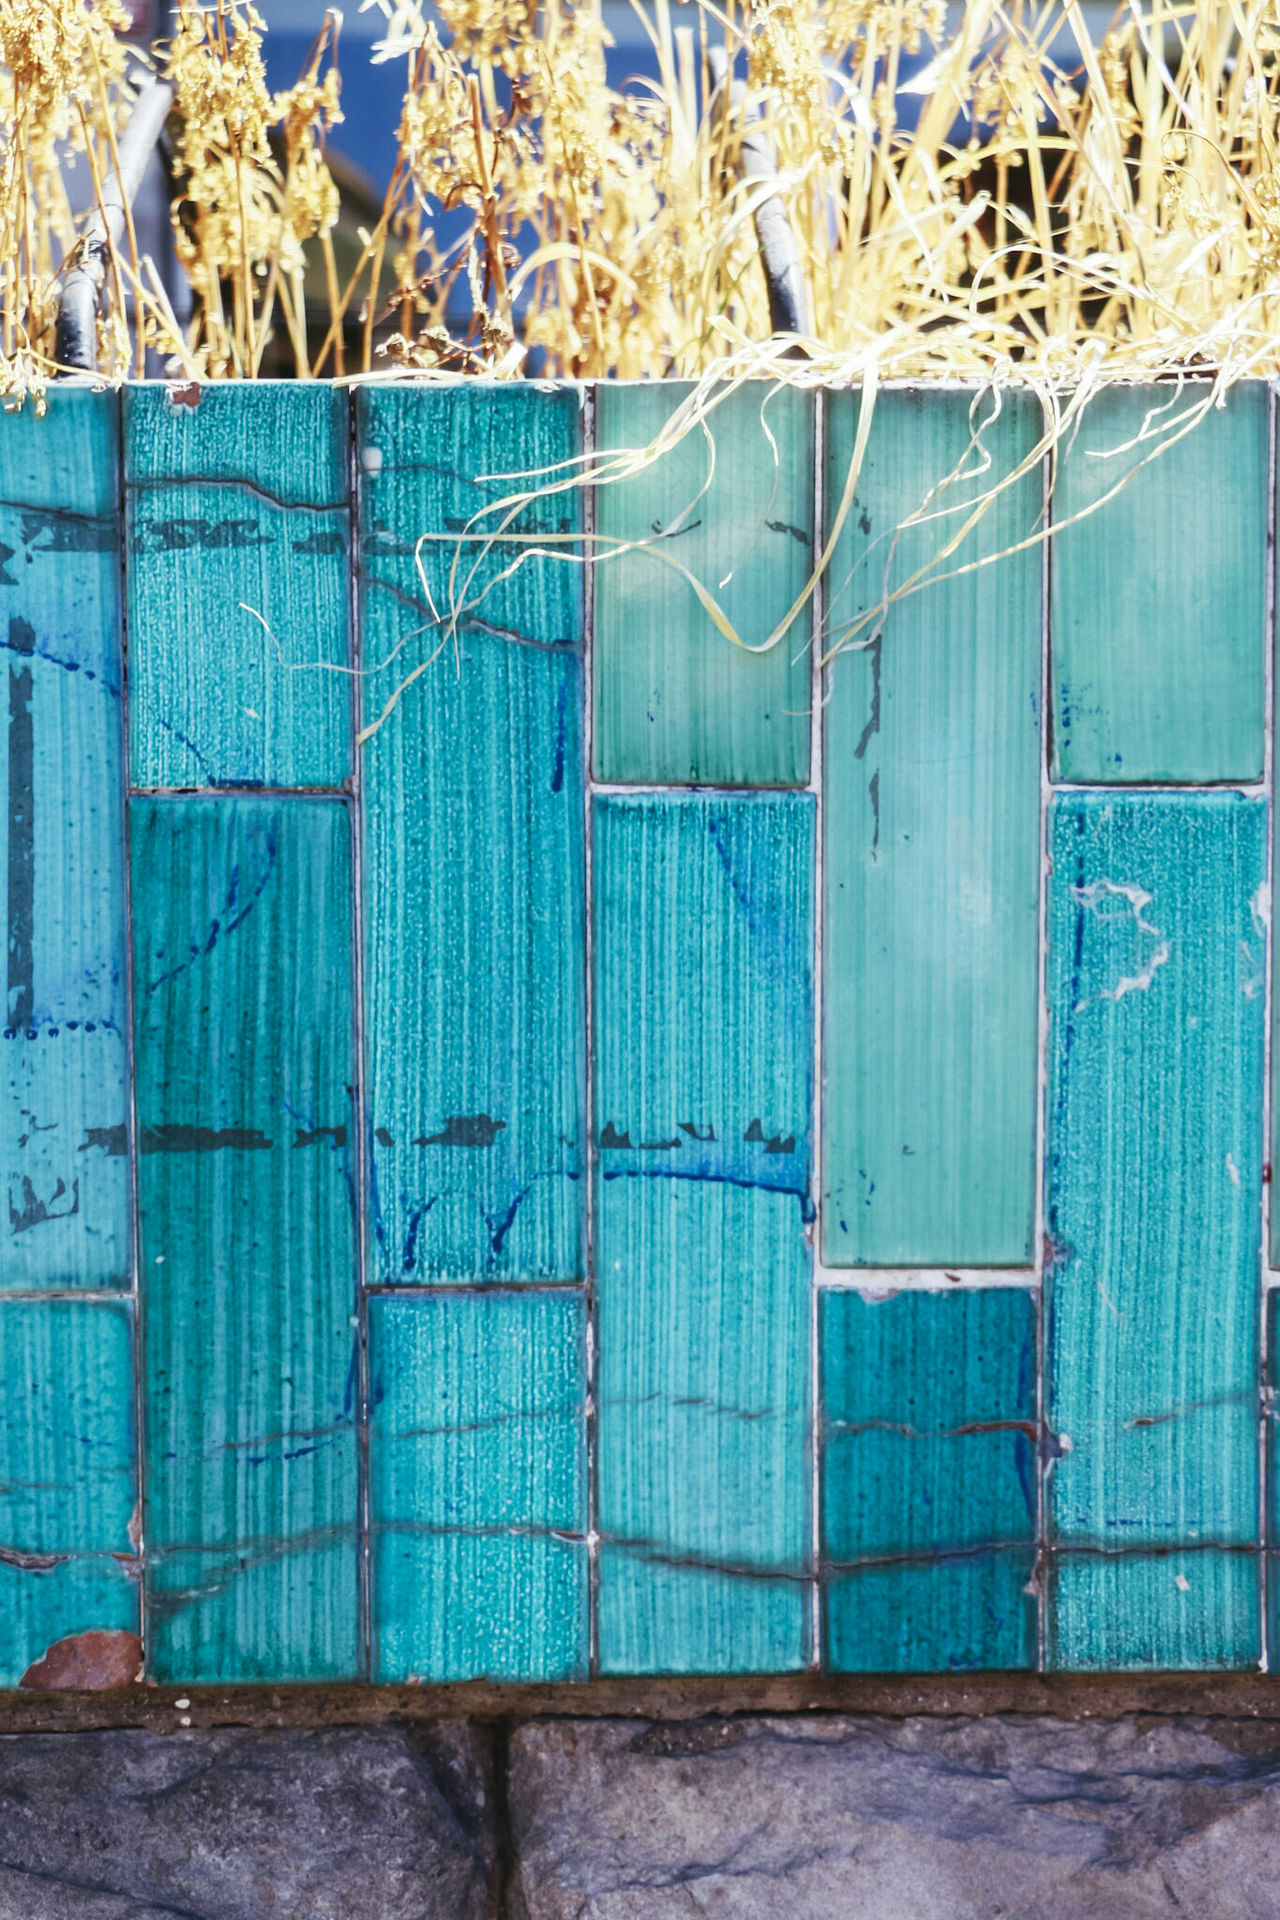 Green Color Built Structure Day Blue Outdoors No People Wood - Material Architecture Multi Colored Close-up